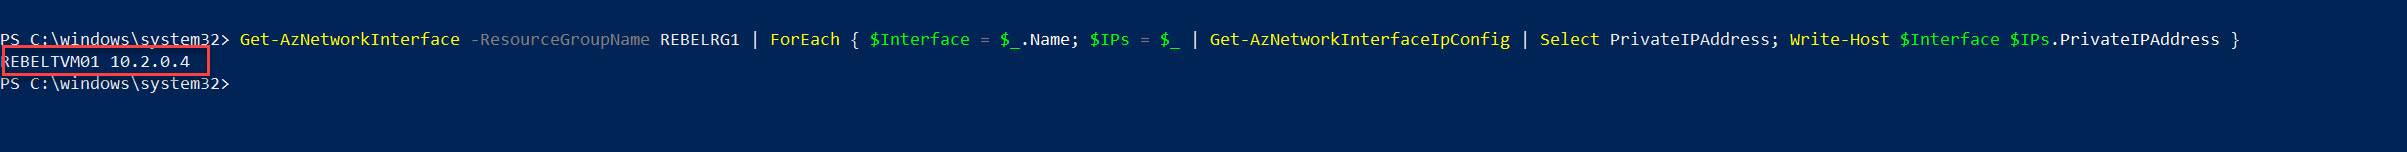 azure vm private ip